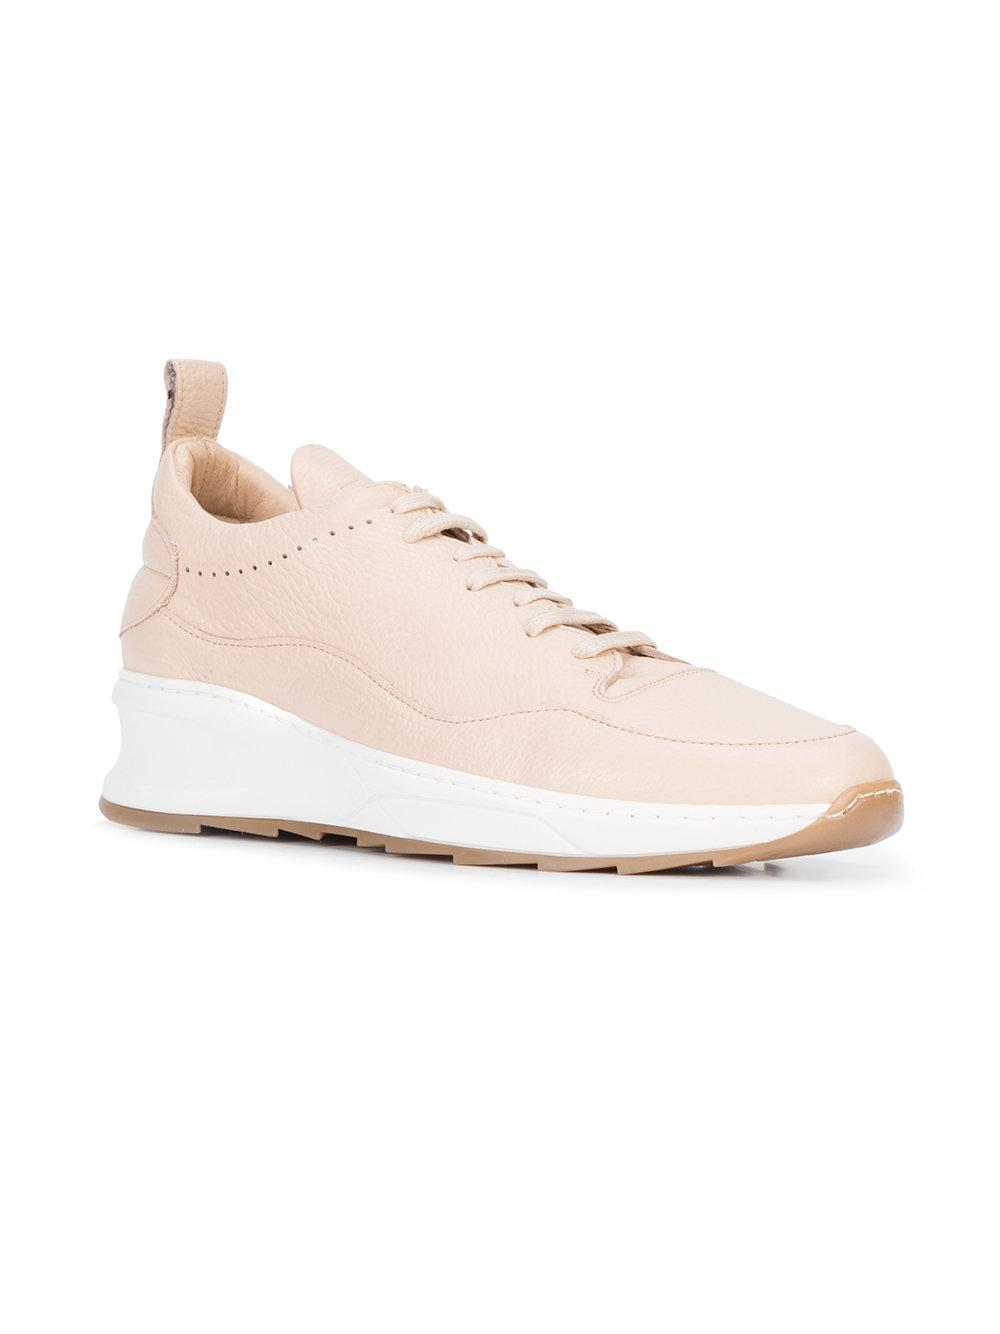 flatform sneakers - Nude & Neutrals Filling Pieces